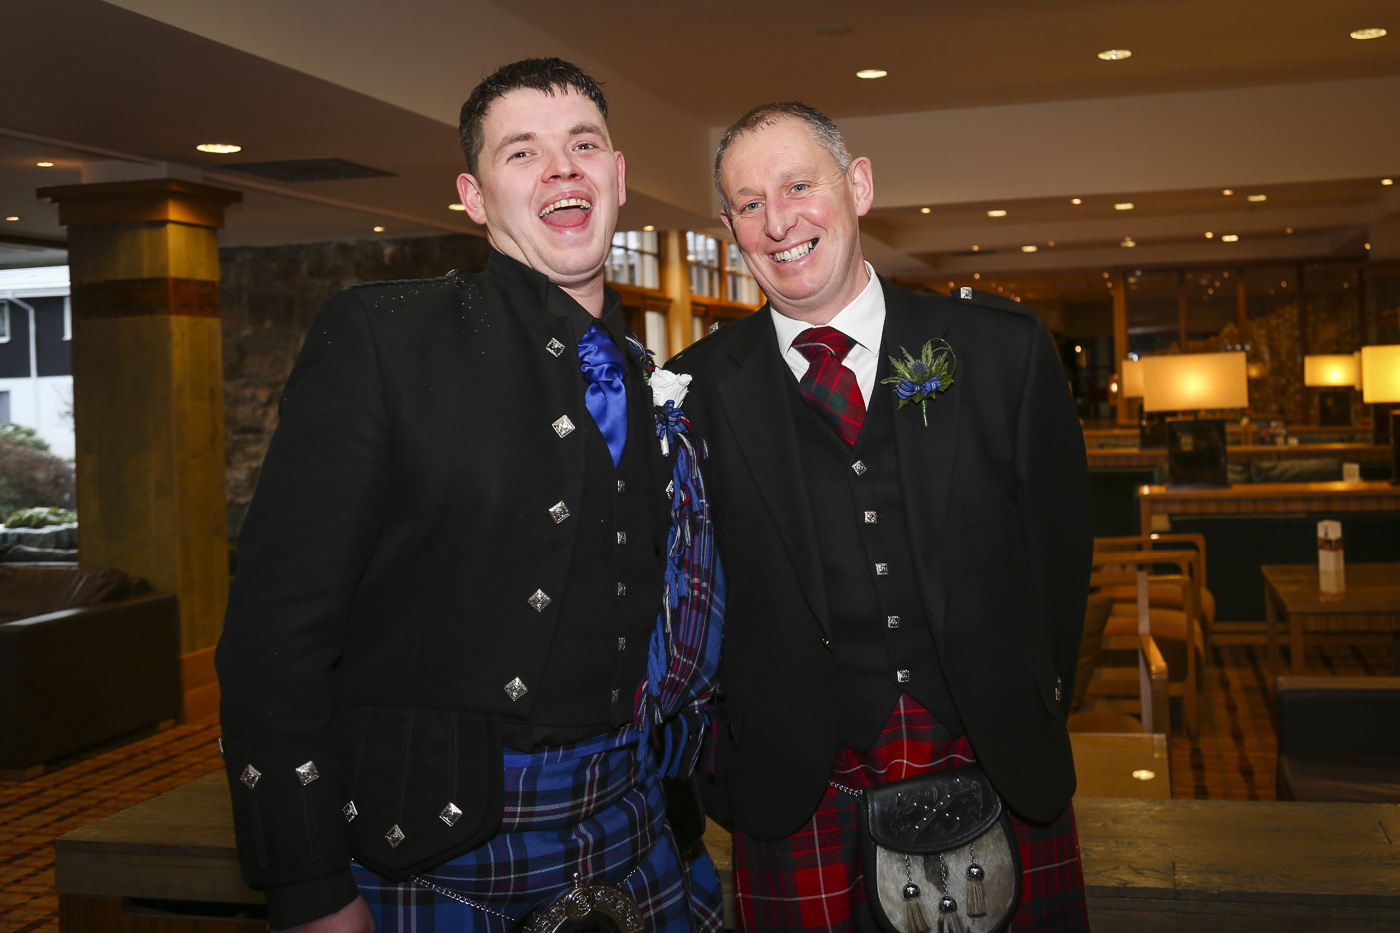 wedding-photography-at-the-hilton-coylumbridge-aviemore-7886